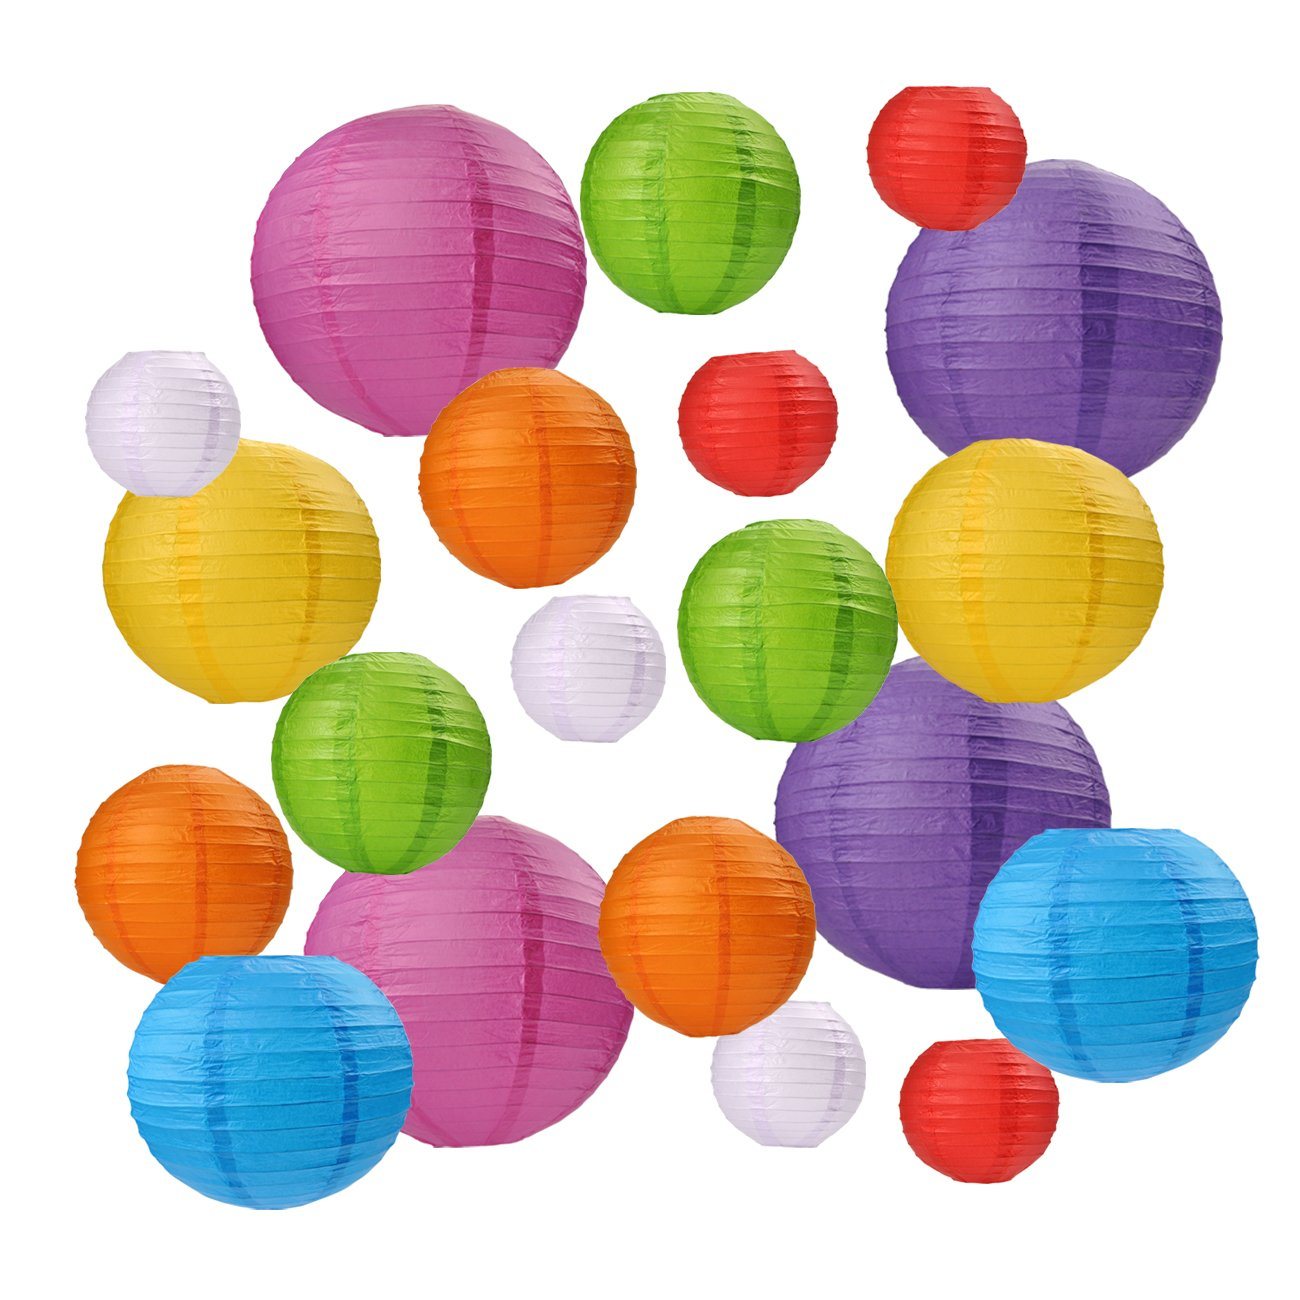 Besource 20 Pcs Colorful Paper Lanterns with Assorted Colors and Sizes for Home Decor,Birthday,Weddings Christmas Parties